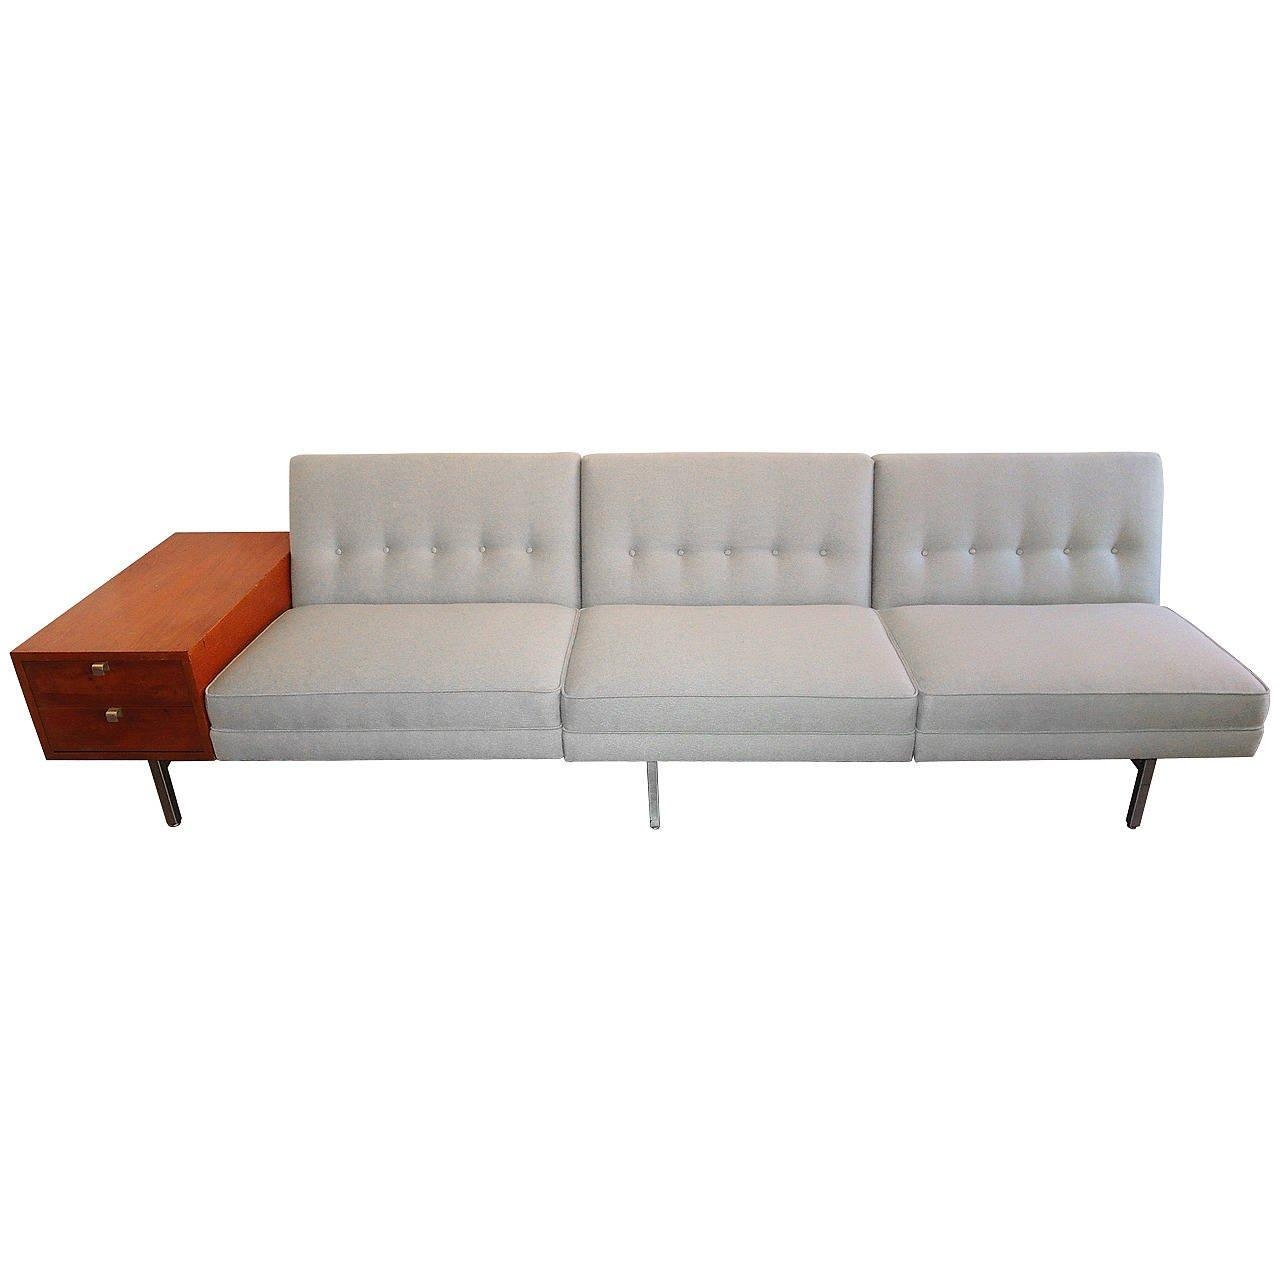 George Nelson Sofas - 32 For Sale At 1Stdibs intended for George Nelson Sofas